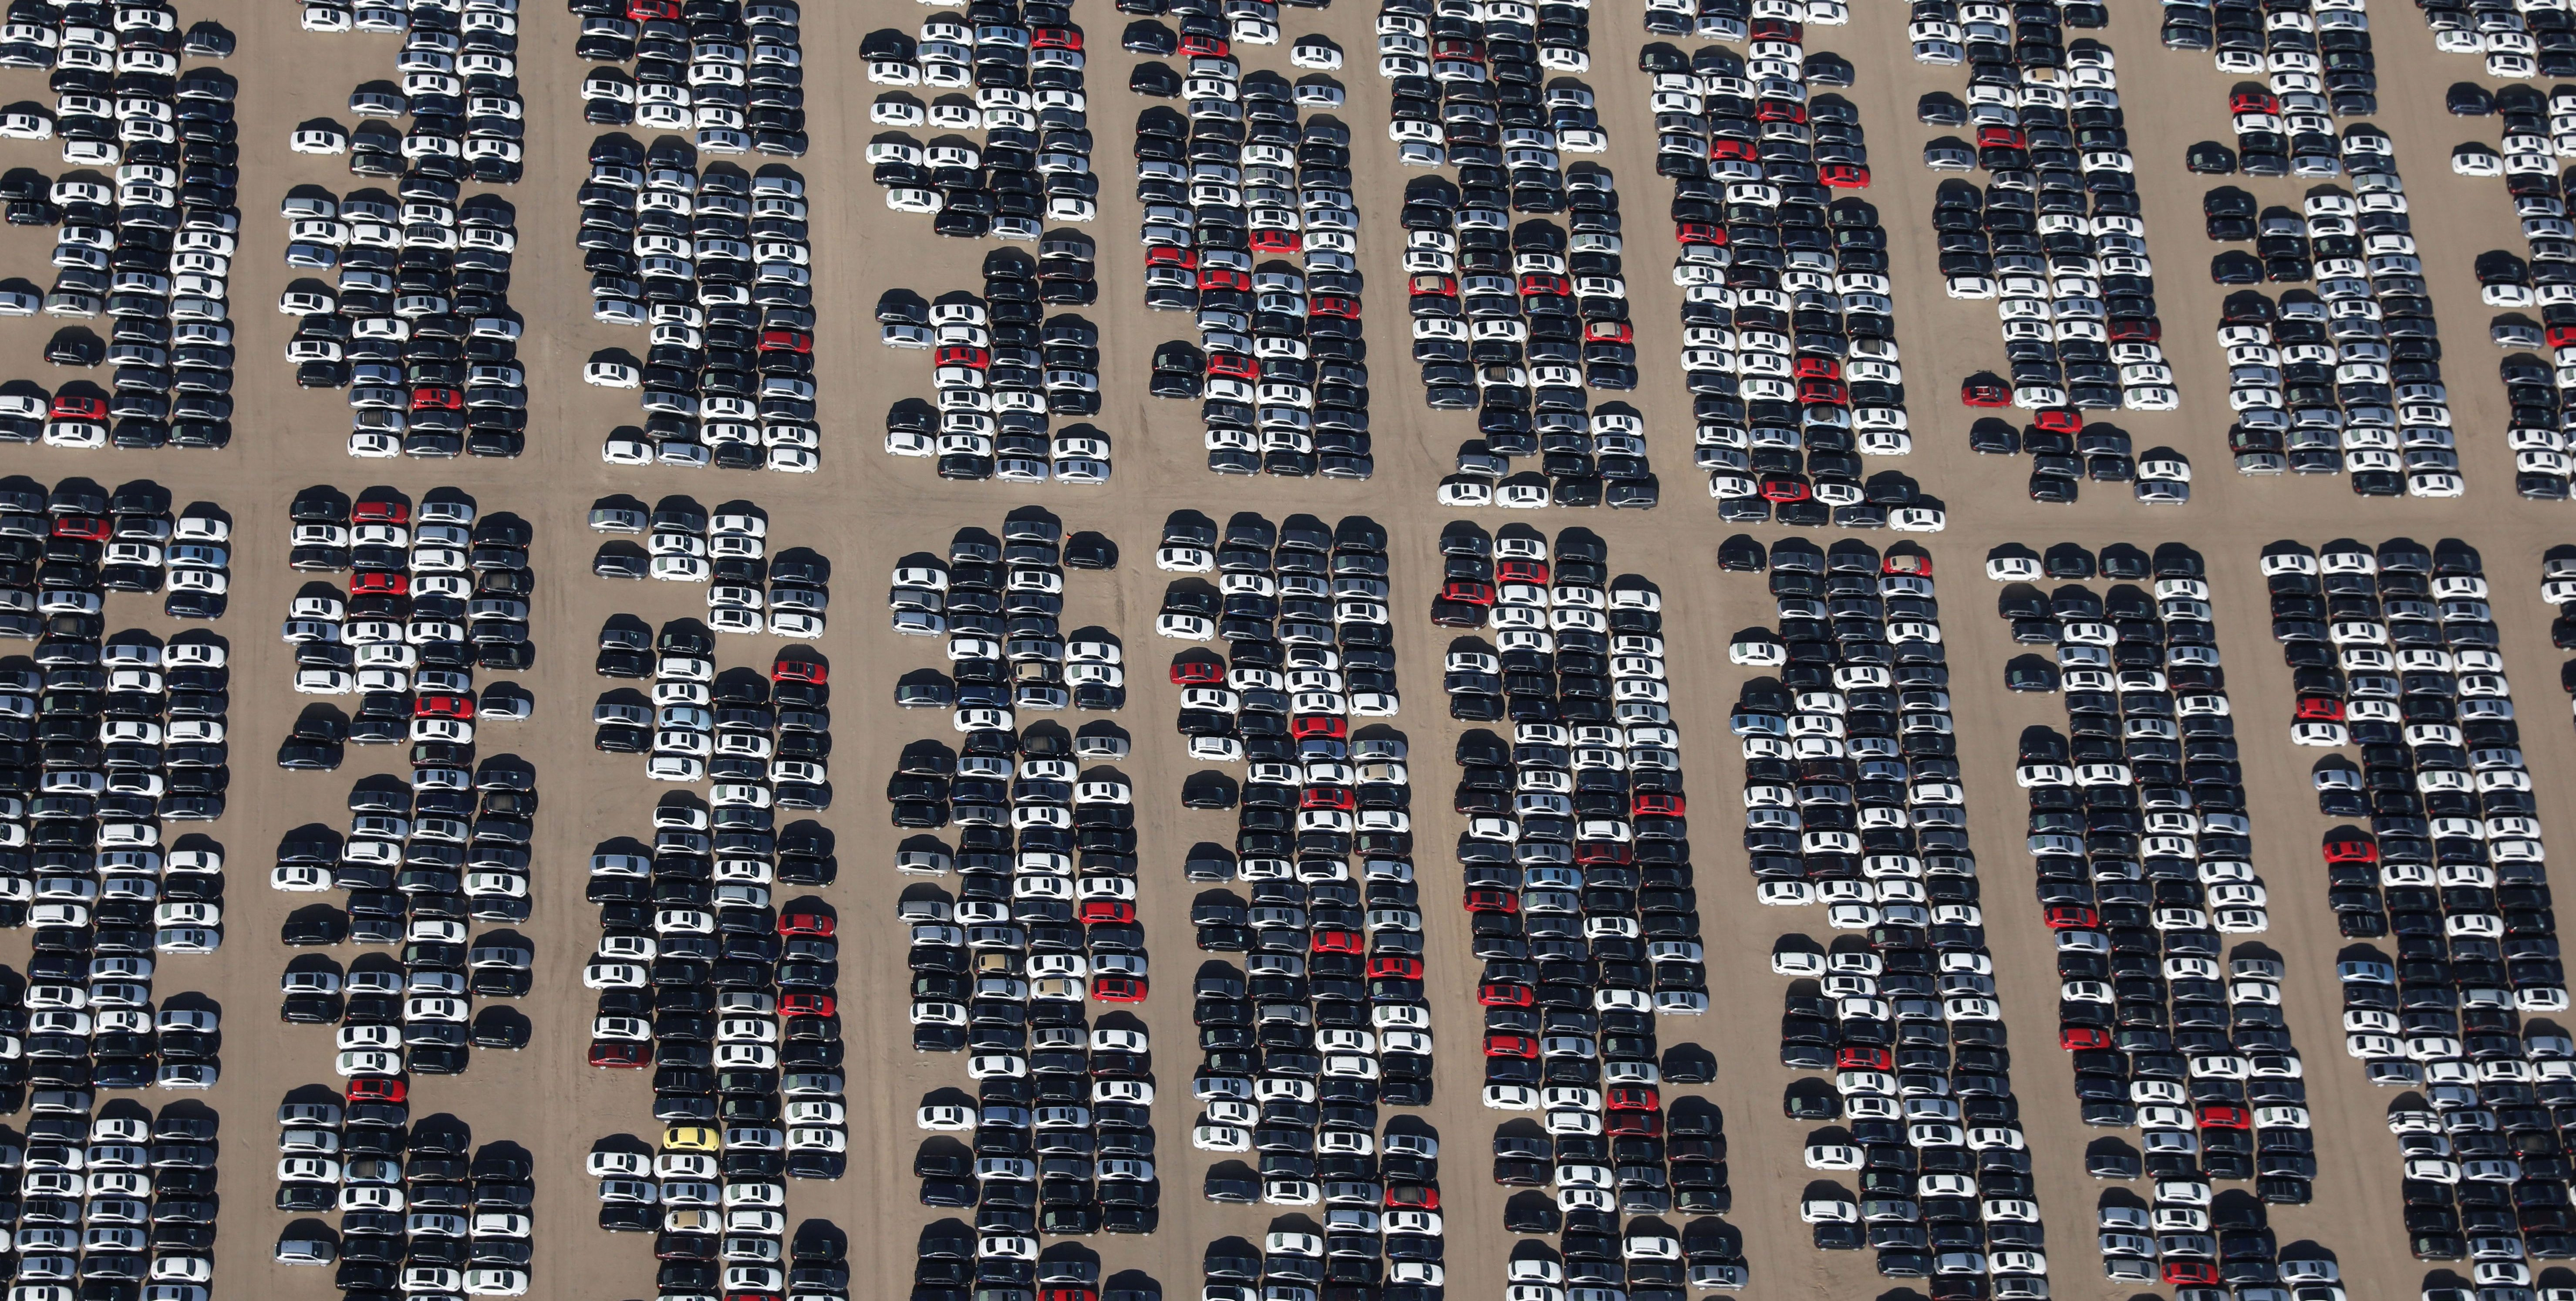 Volkswagen Tdi Buyback >> Volkswagen buyback: Volkswagen has bought back thousands cars. Here's what that looks like — Quartz